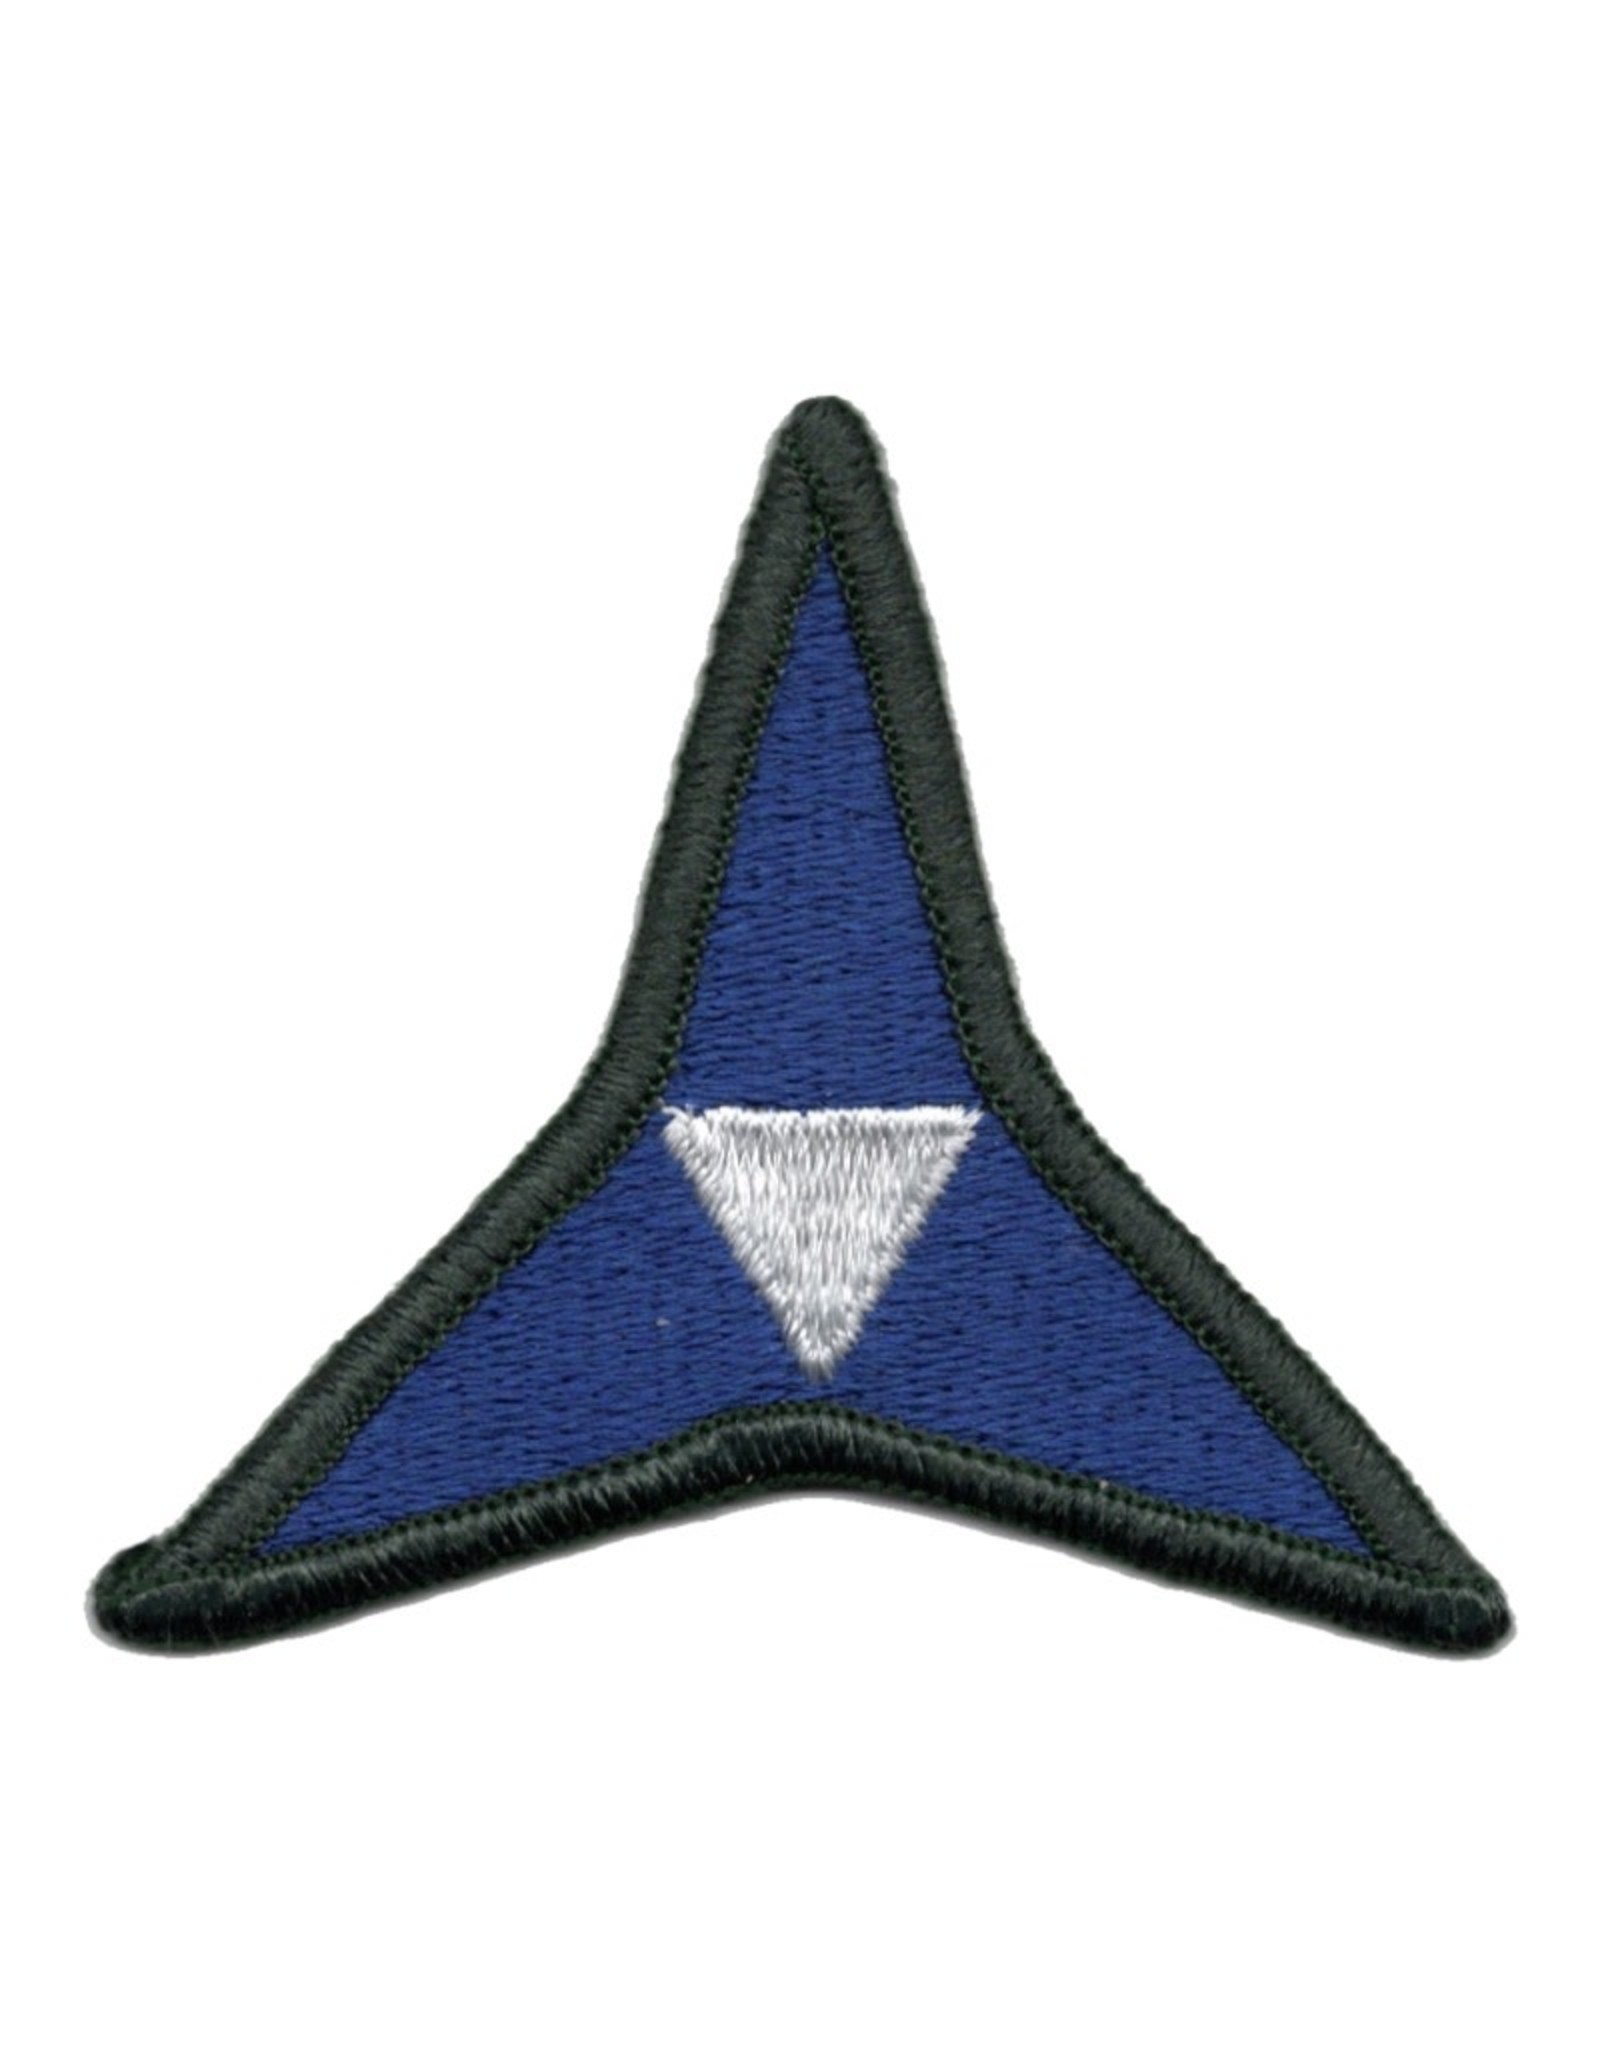 MidMil Embroidered 3rd Army Corps Emblem Patch